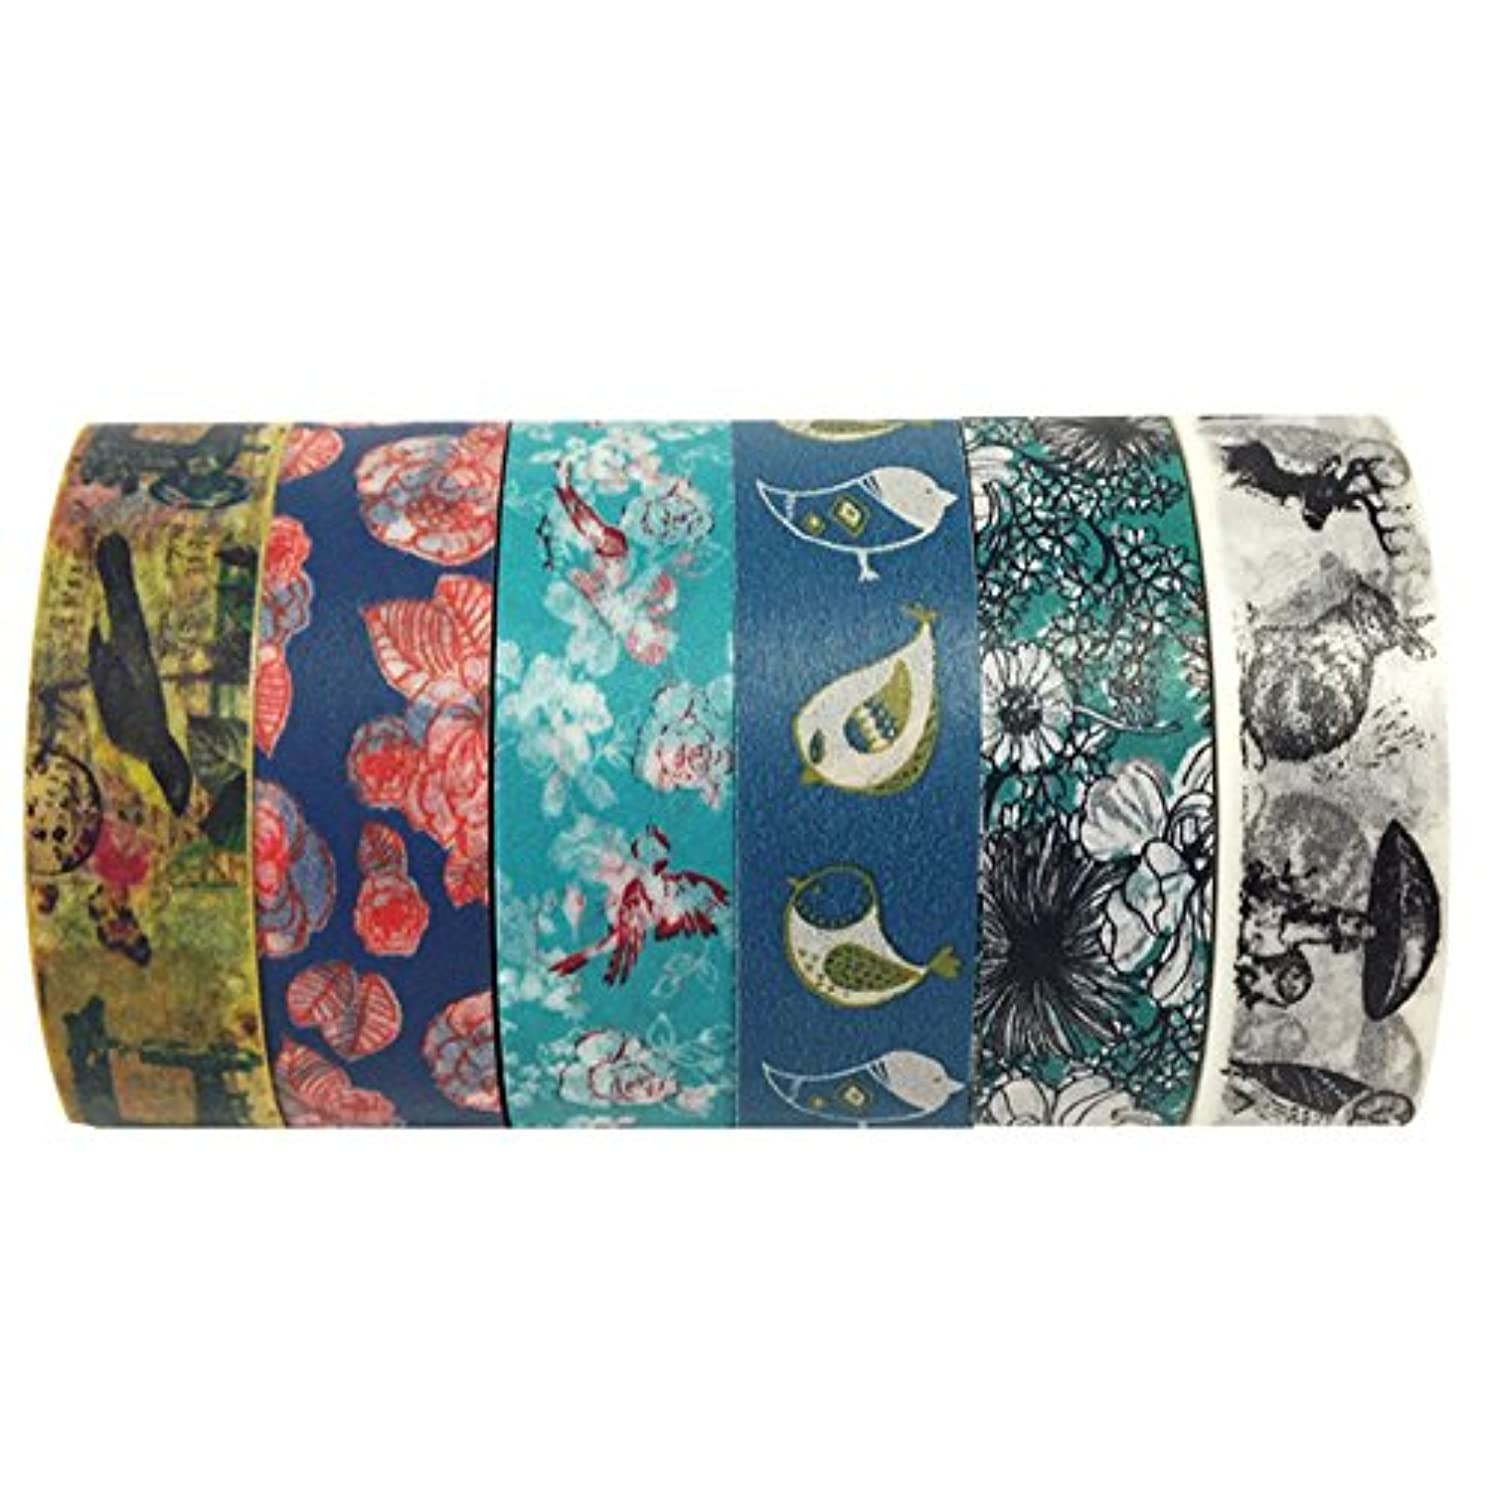 Wrapables VPK23 Premium Value Pack Washi Masking Tape Collection, Set of 6